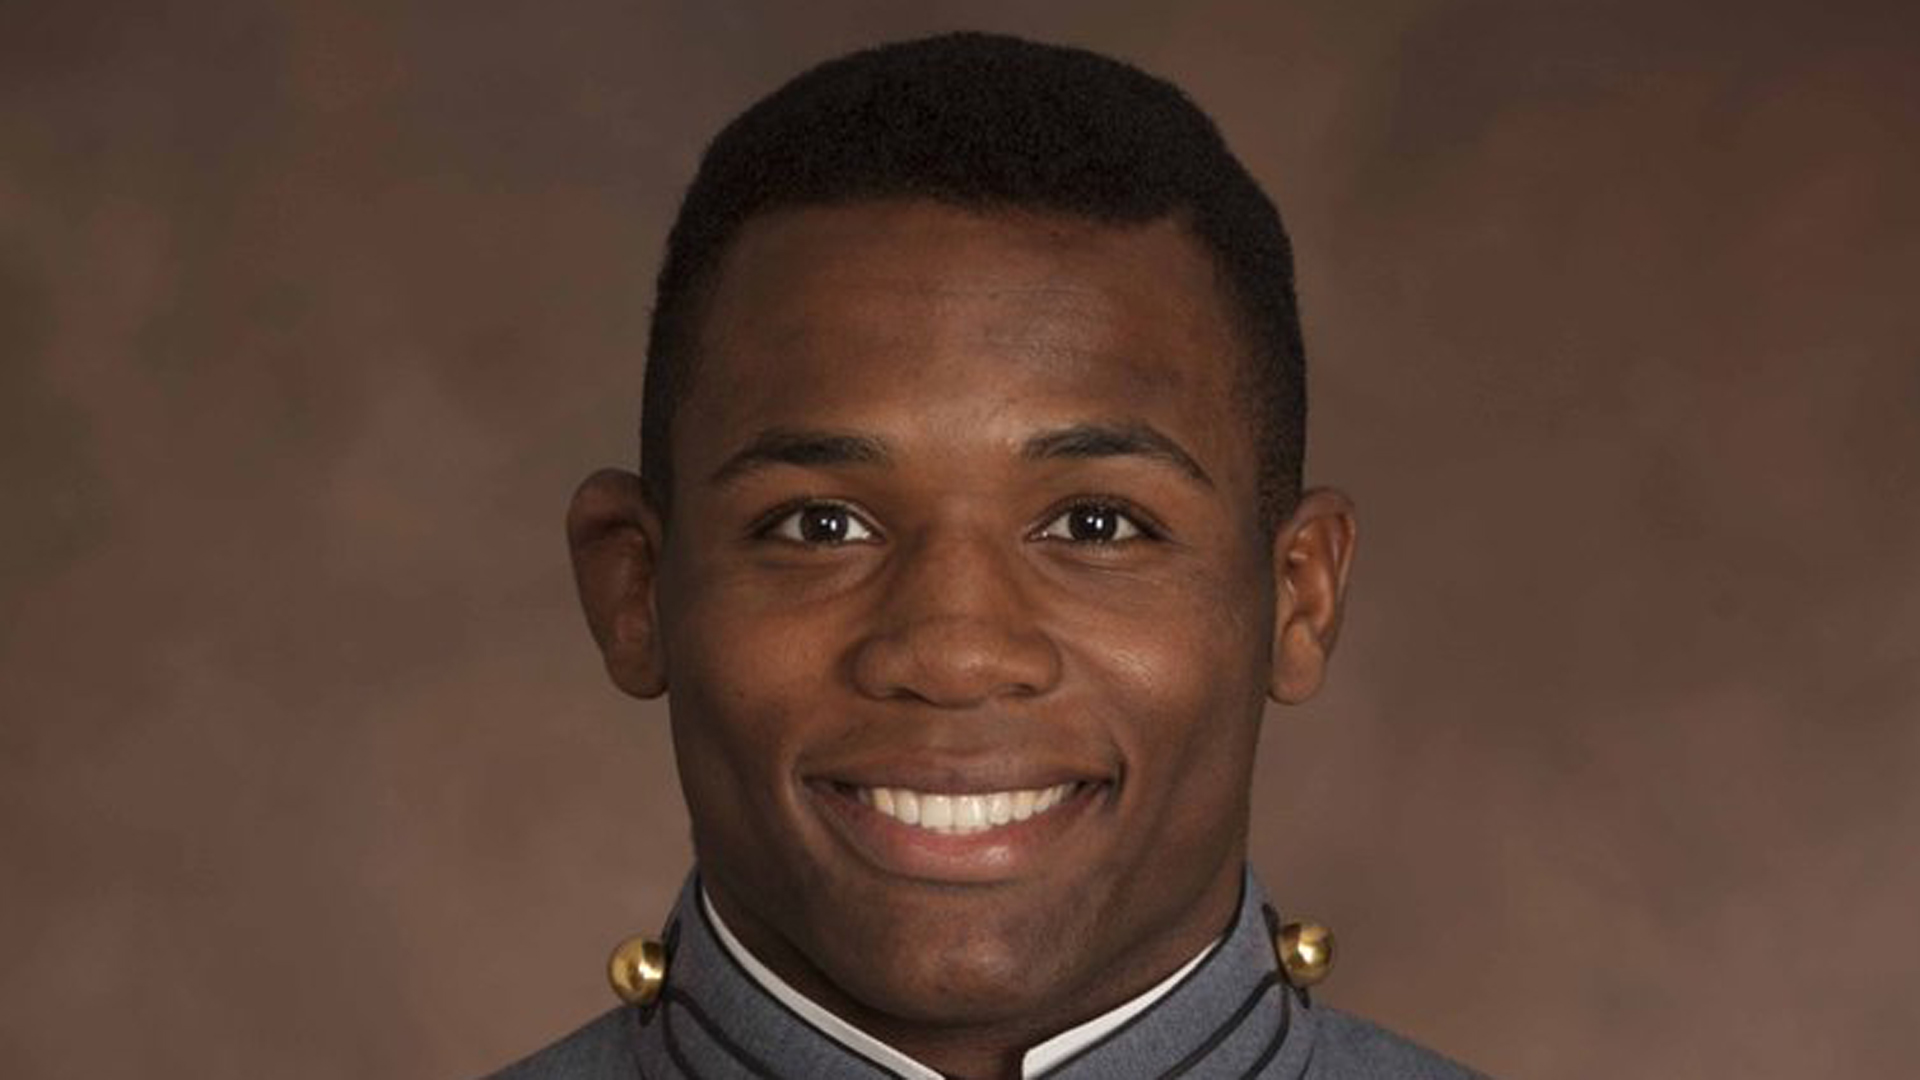 Christopher J. Morgan of West Orange, New Jersey, the West Point cadet killed during a training accident on June 6, 2019, is seen in a photo released by the U.S. Military Academy a day later.